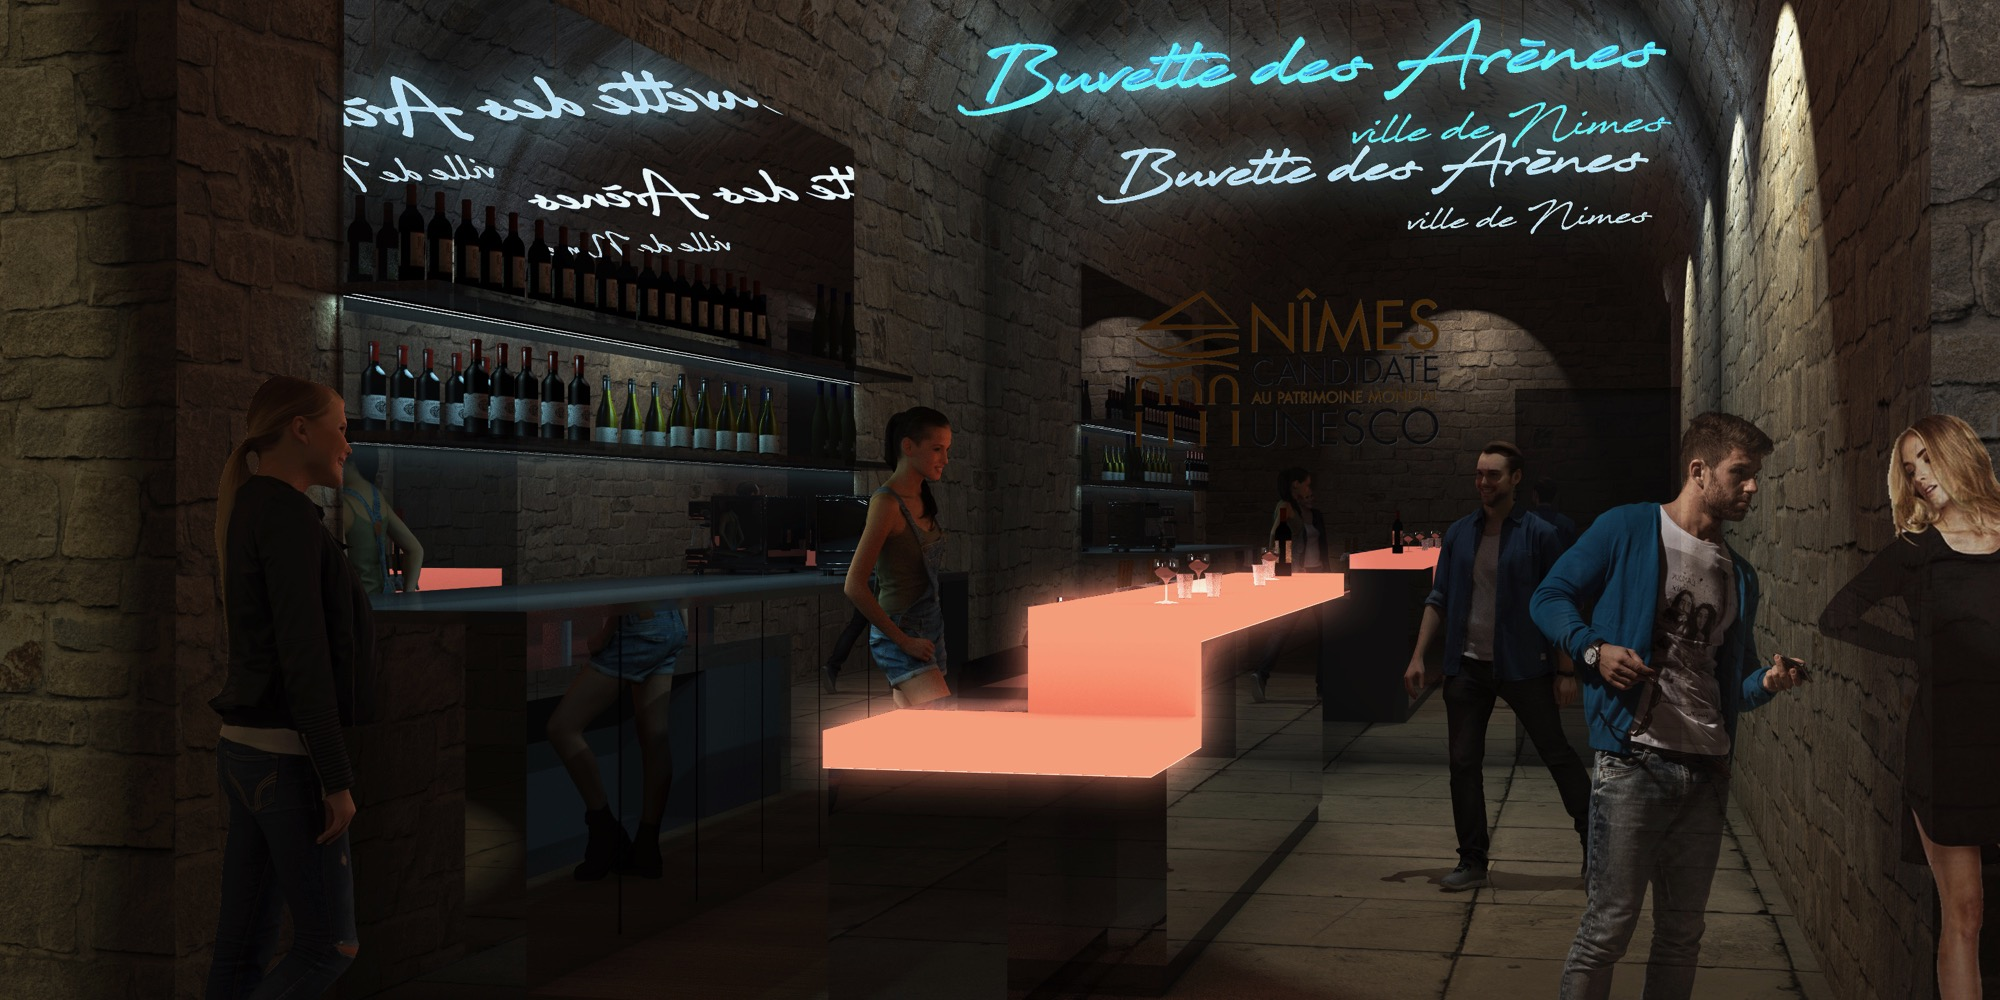 3D perspective bar arenes nimes 3